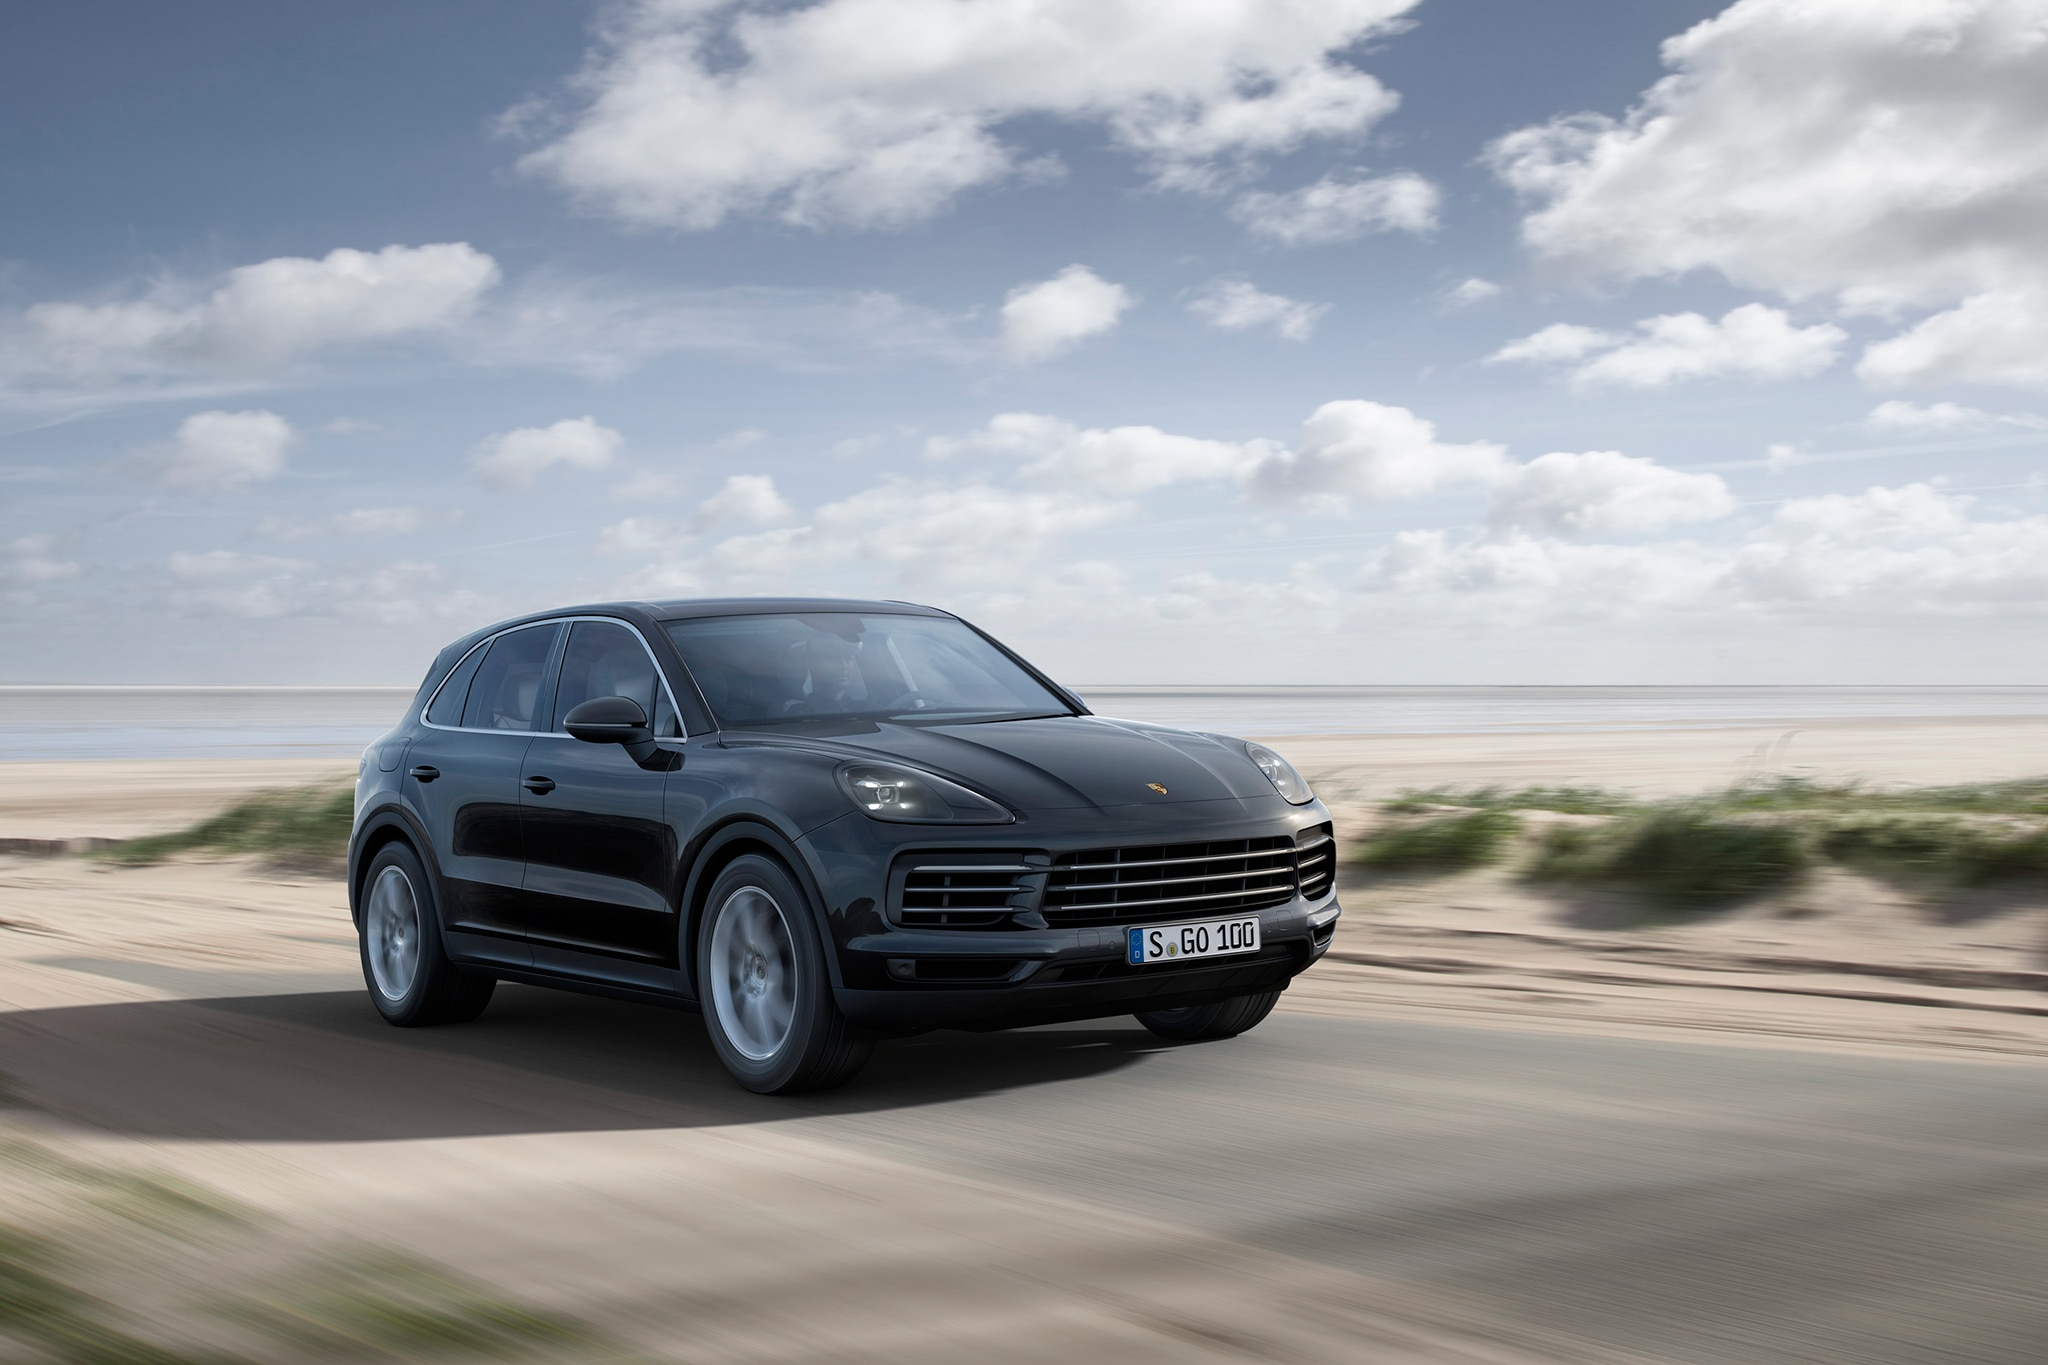 2019 Porsche Cayenne Front Three Quarter In Motion